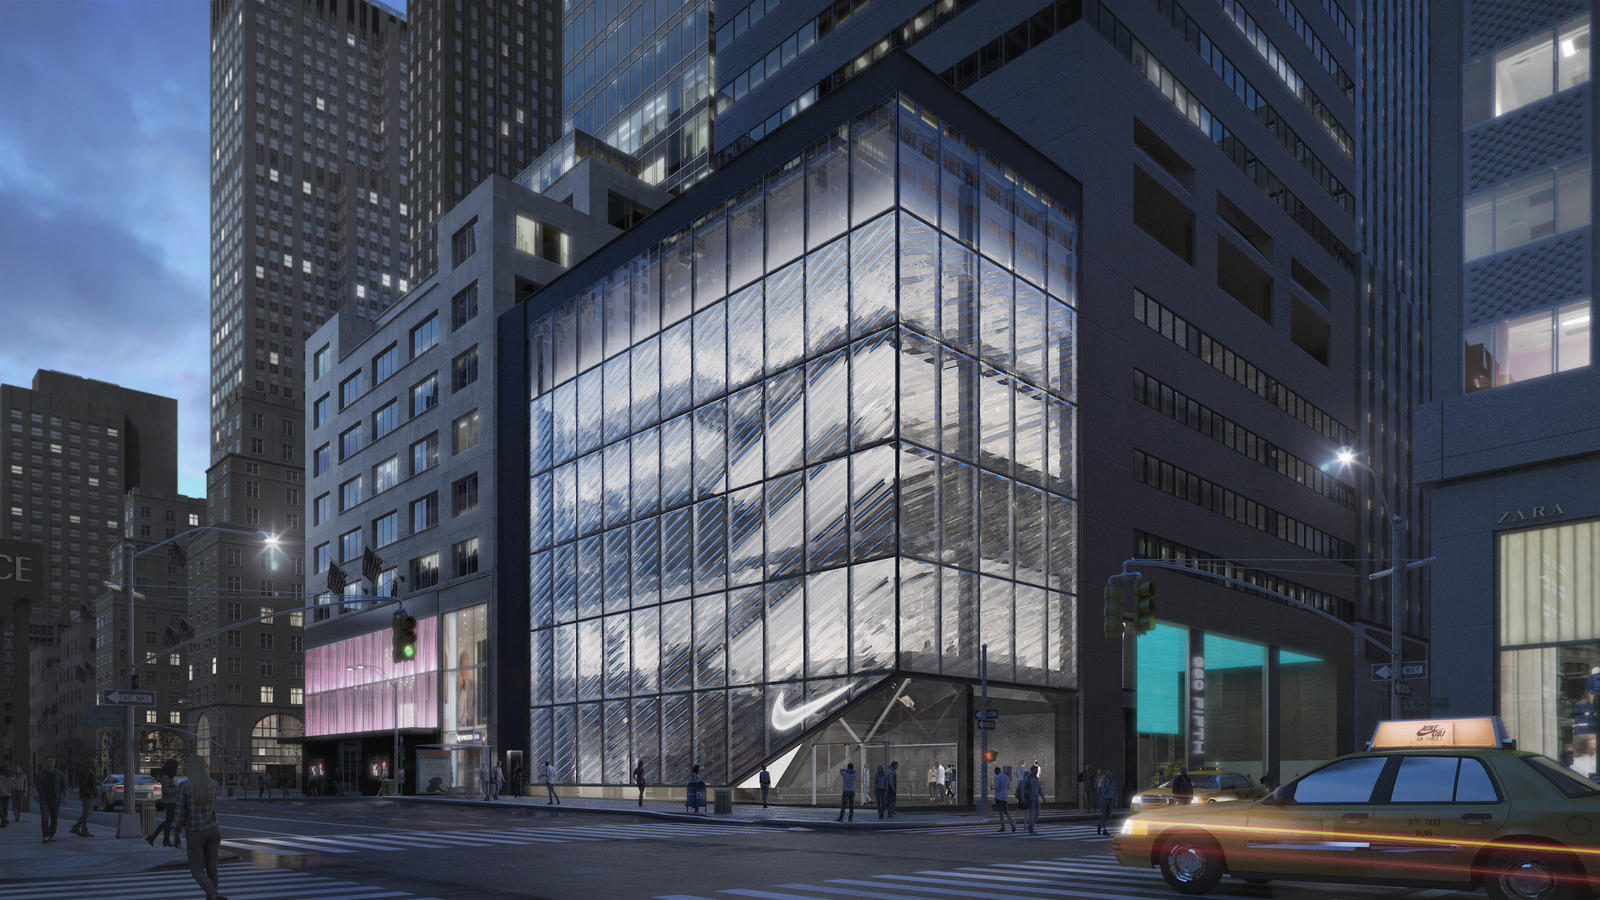 Boutique en ligne mejor selección de patrones de moda New Flagship Store Planned for New York City - Nike News